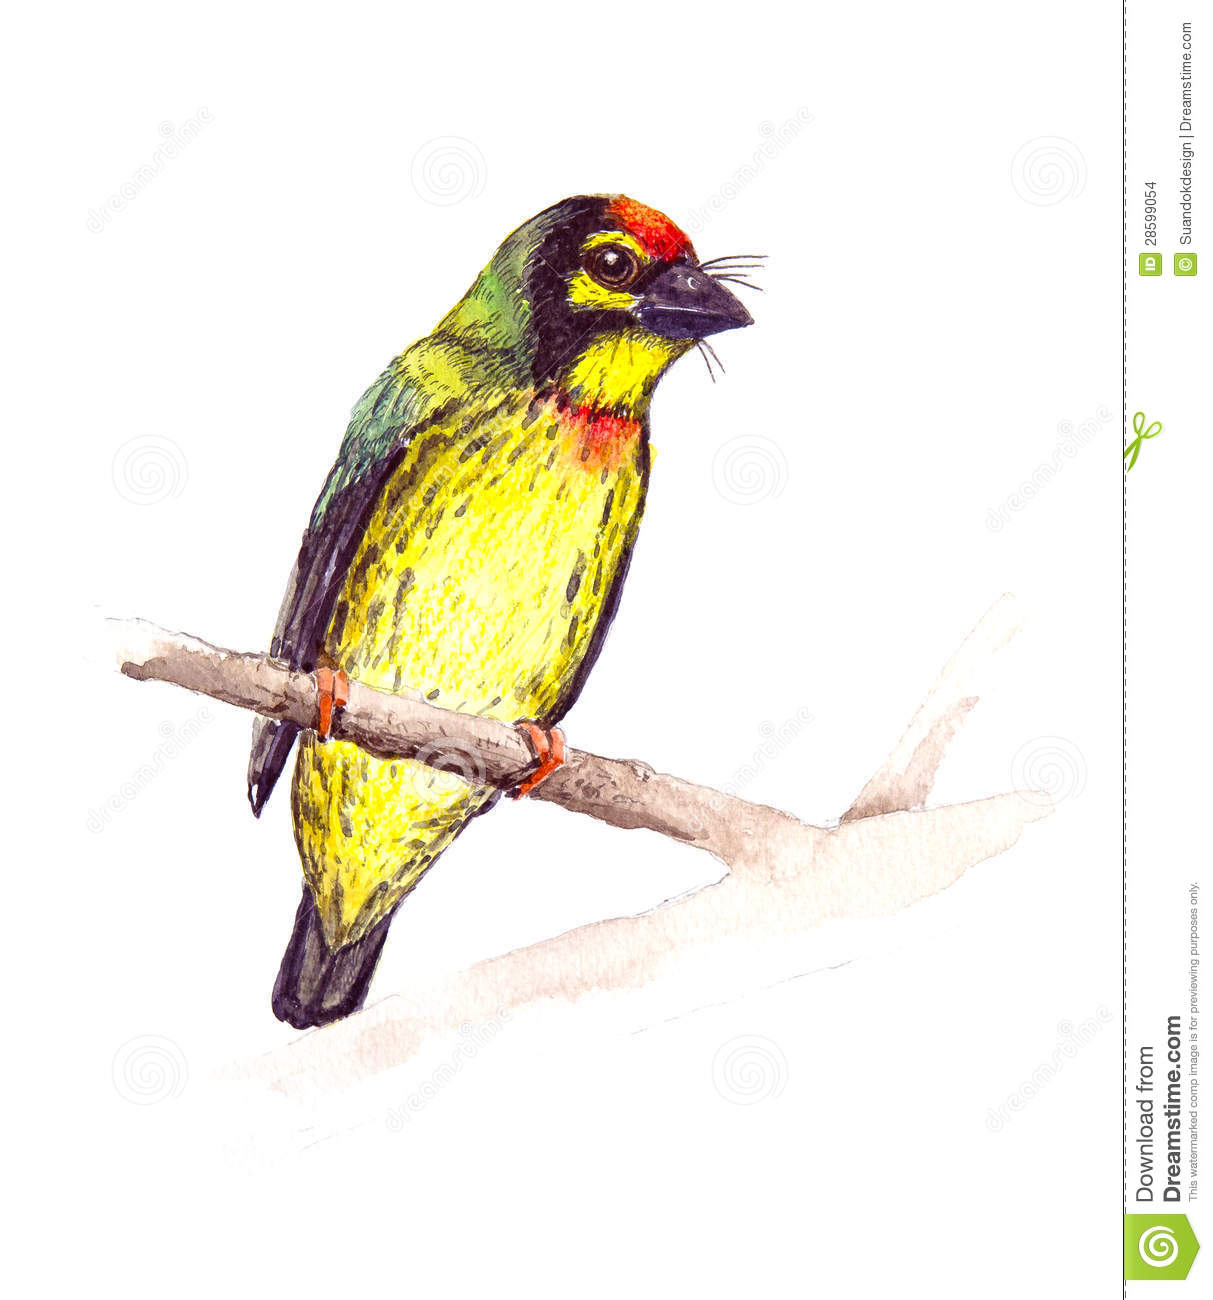 Coppersmith Barbet clipart #19, Download drawings